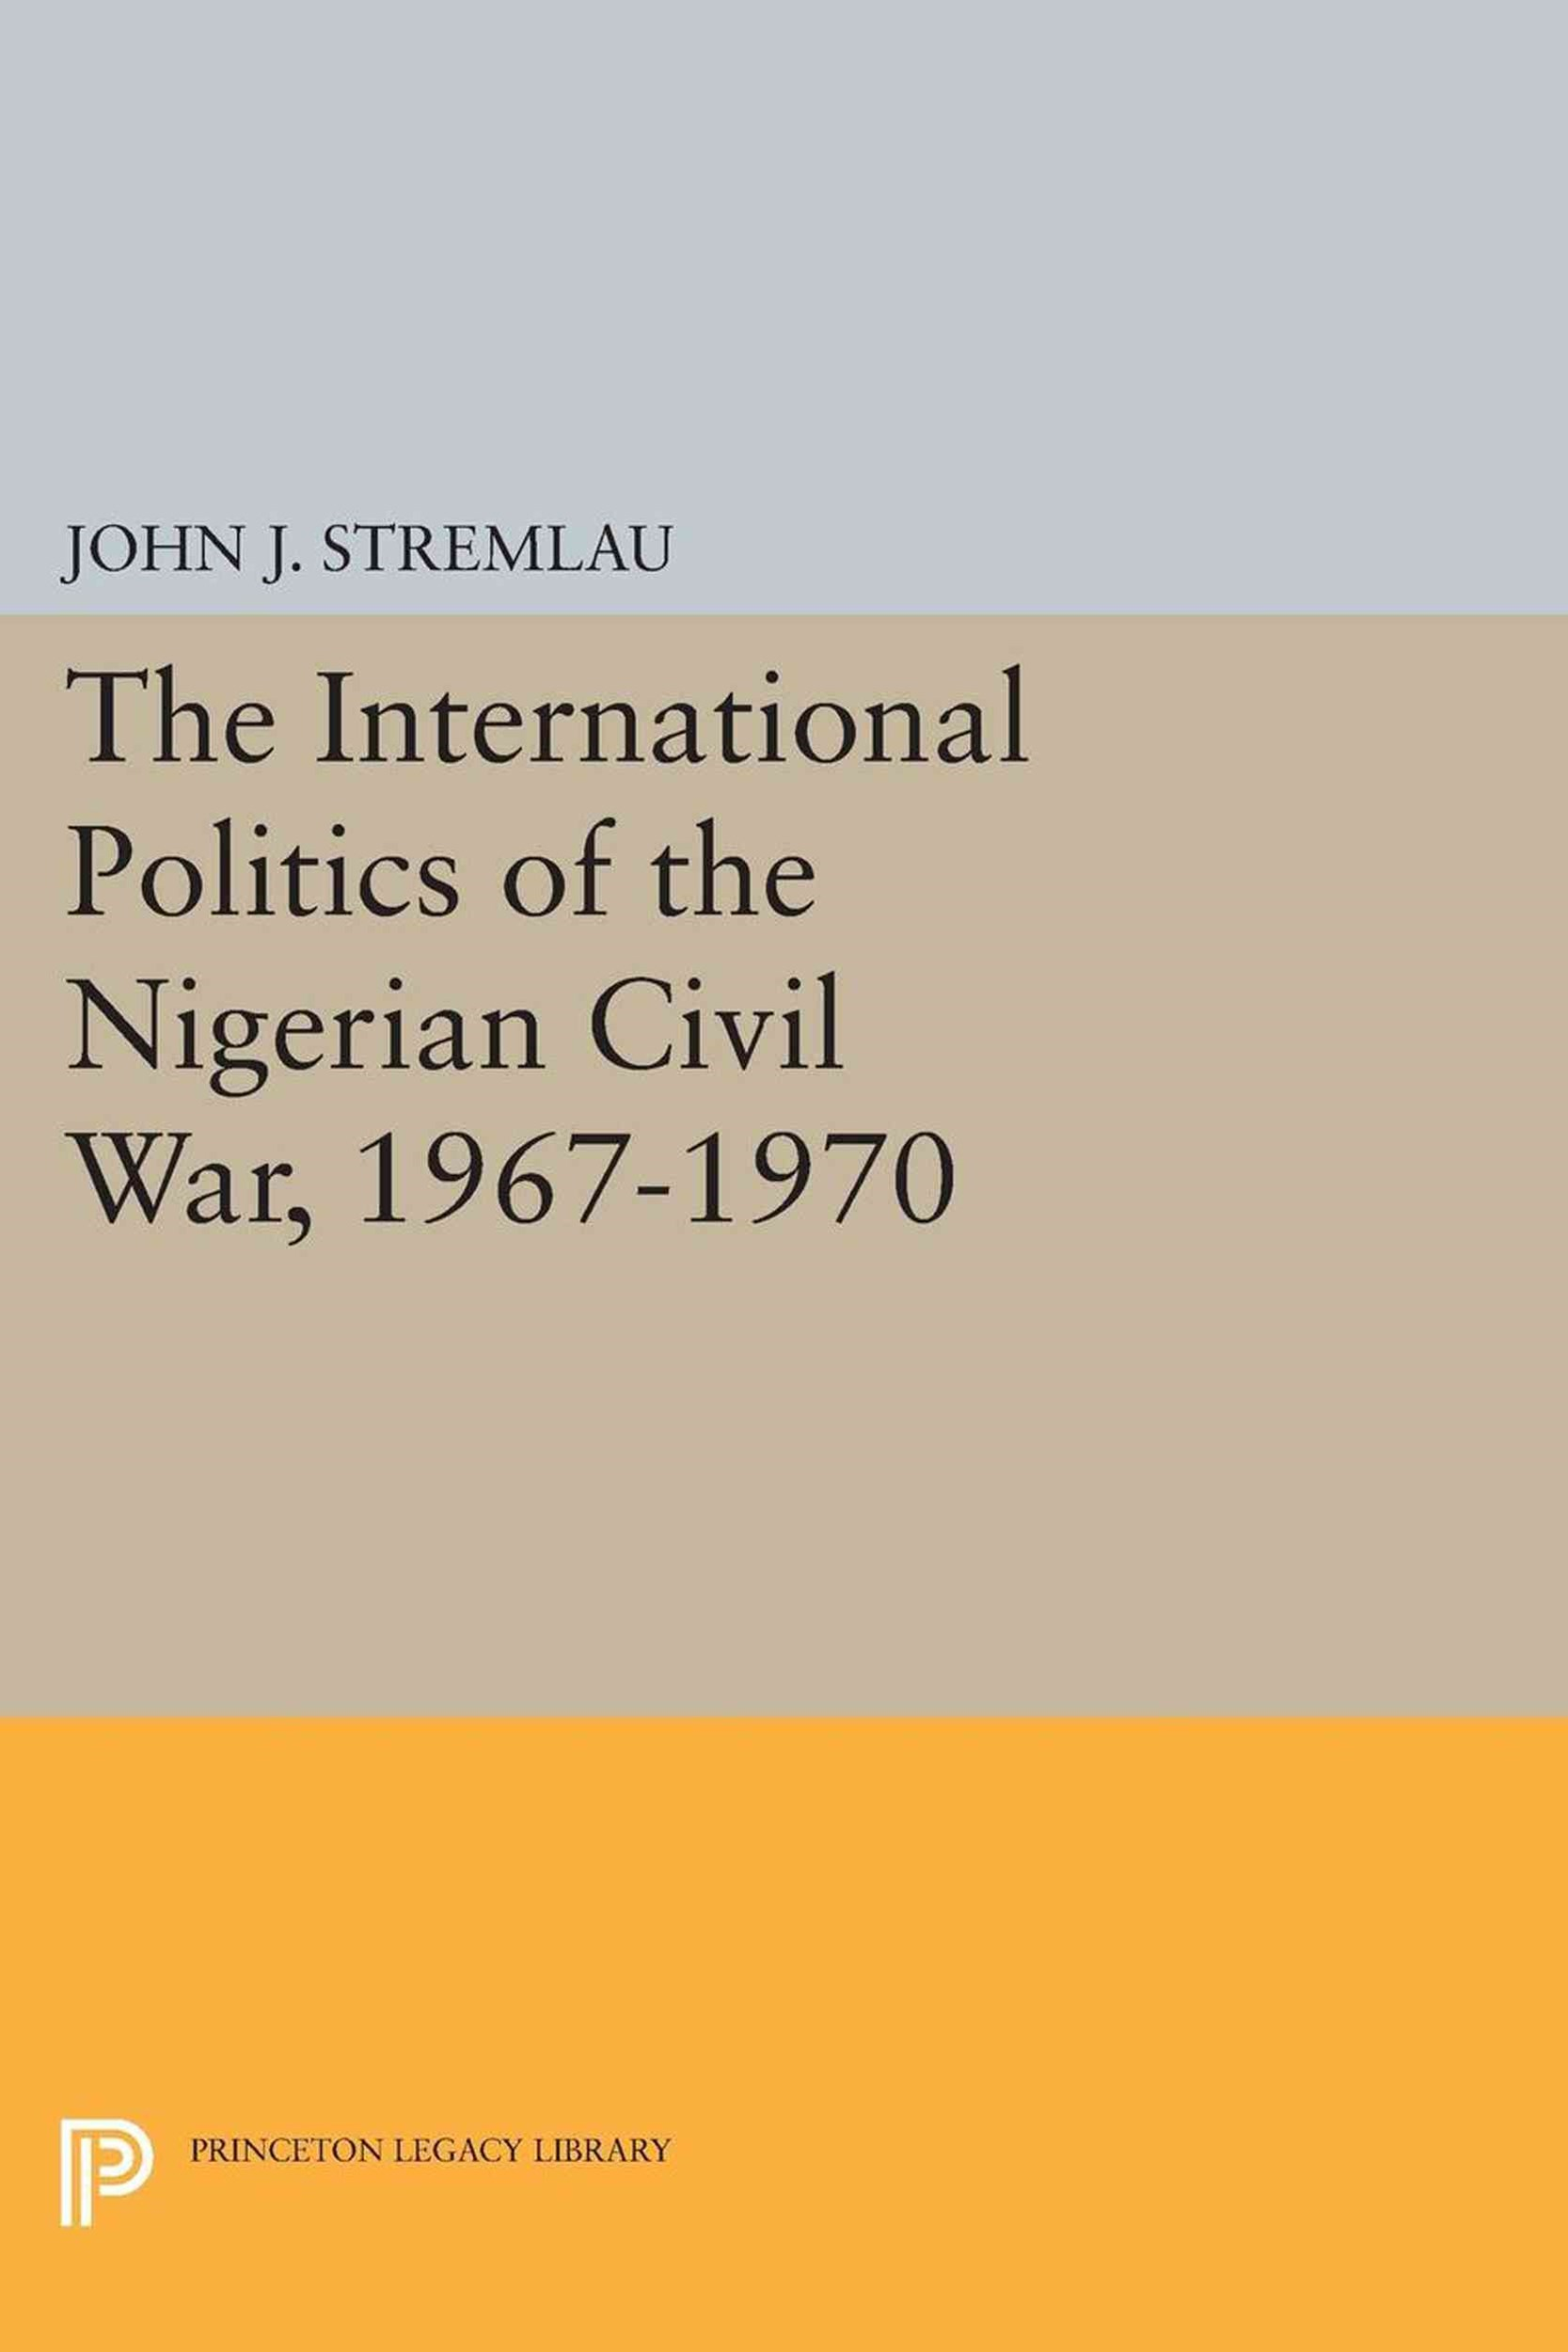 The International Politics of the Nigerian Civil War, 1967-1970